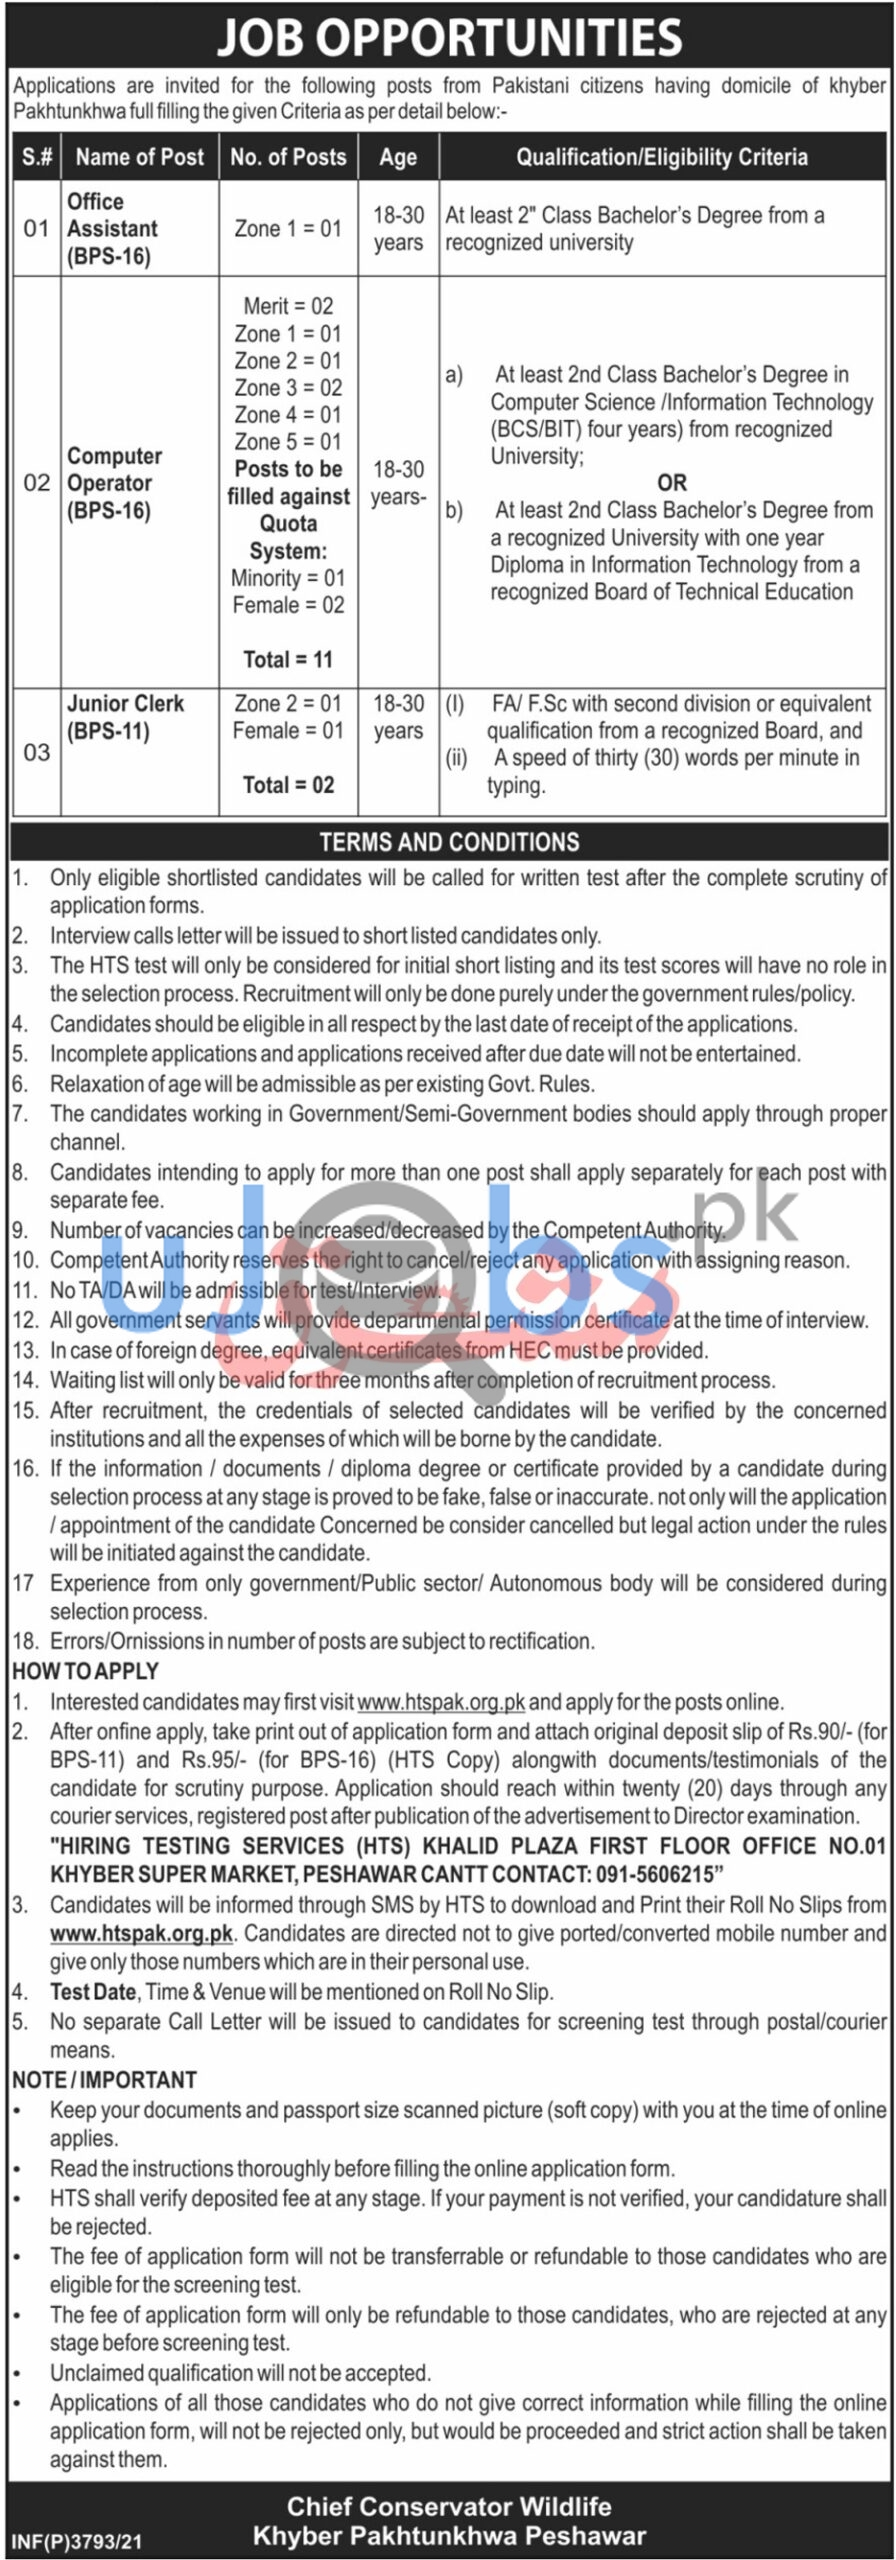 KPK Government Jobs 2021 at Forestry Environment and Wildlife Department